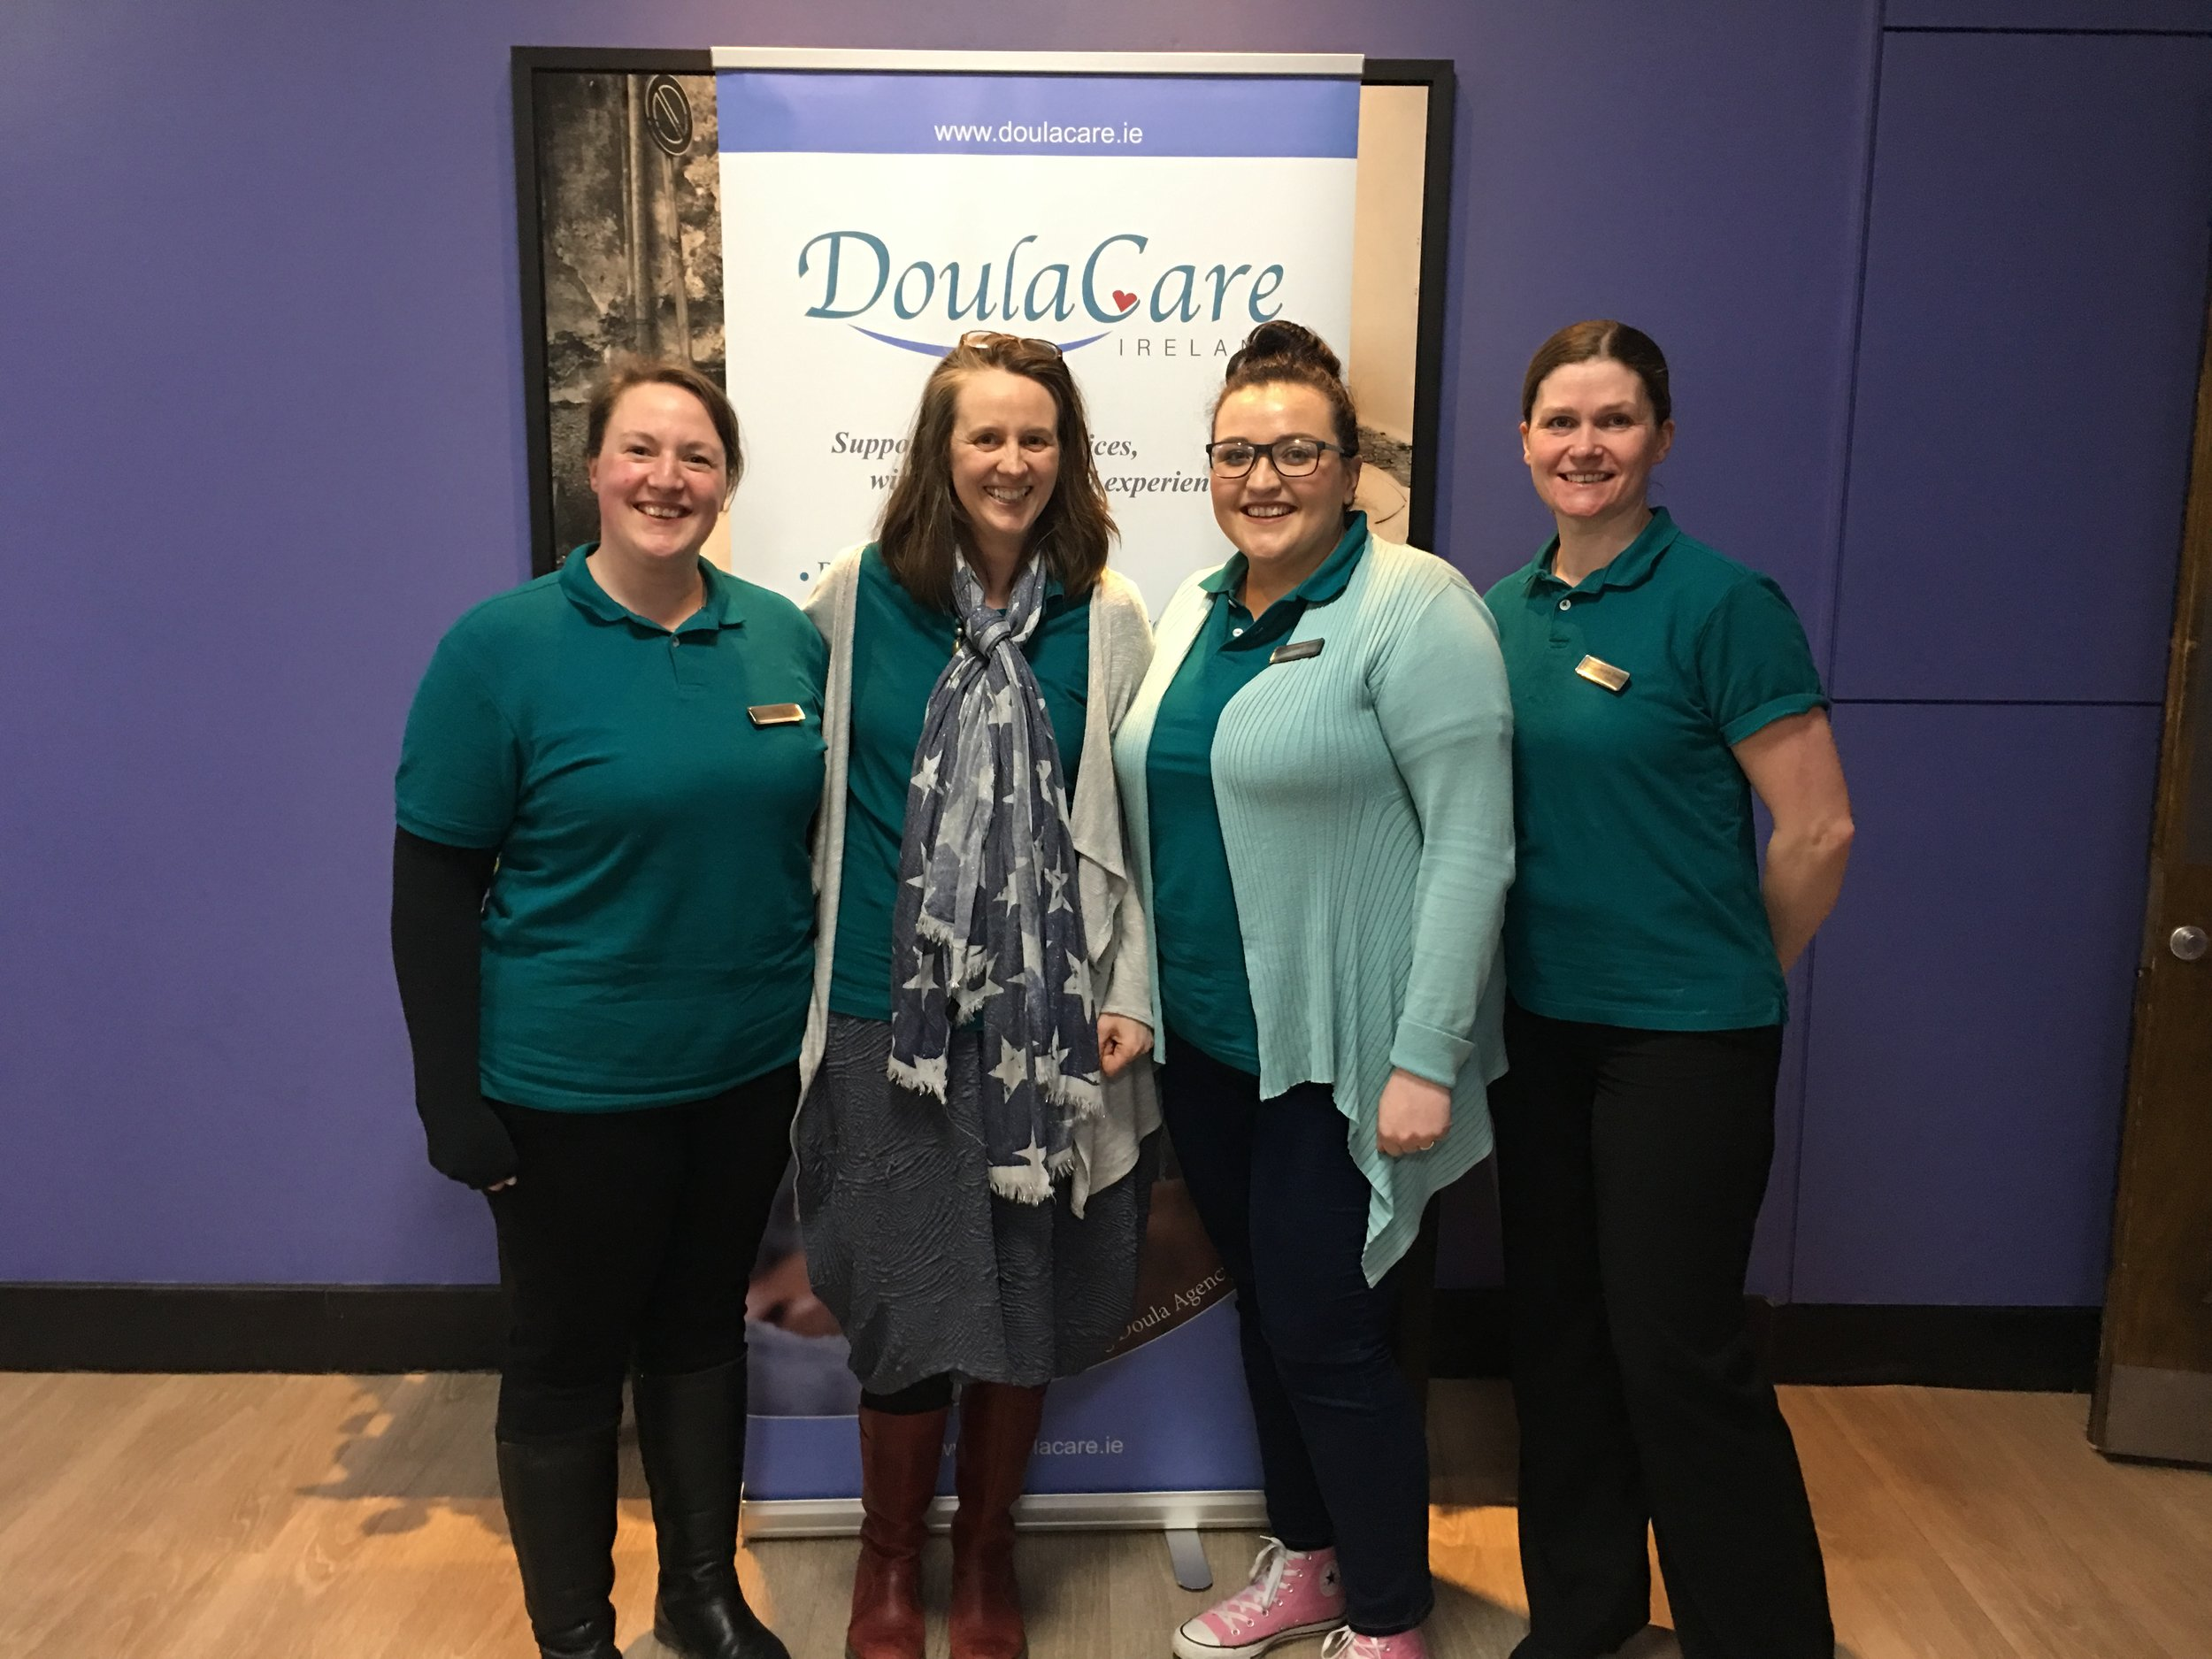 Our Cork DoulaCare Ireland team from l-r: Zoe, Mary, Claire and Jacquie at our Meet the Doula Event for World Doula Week in Cork.